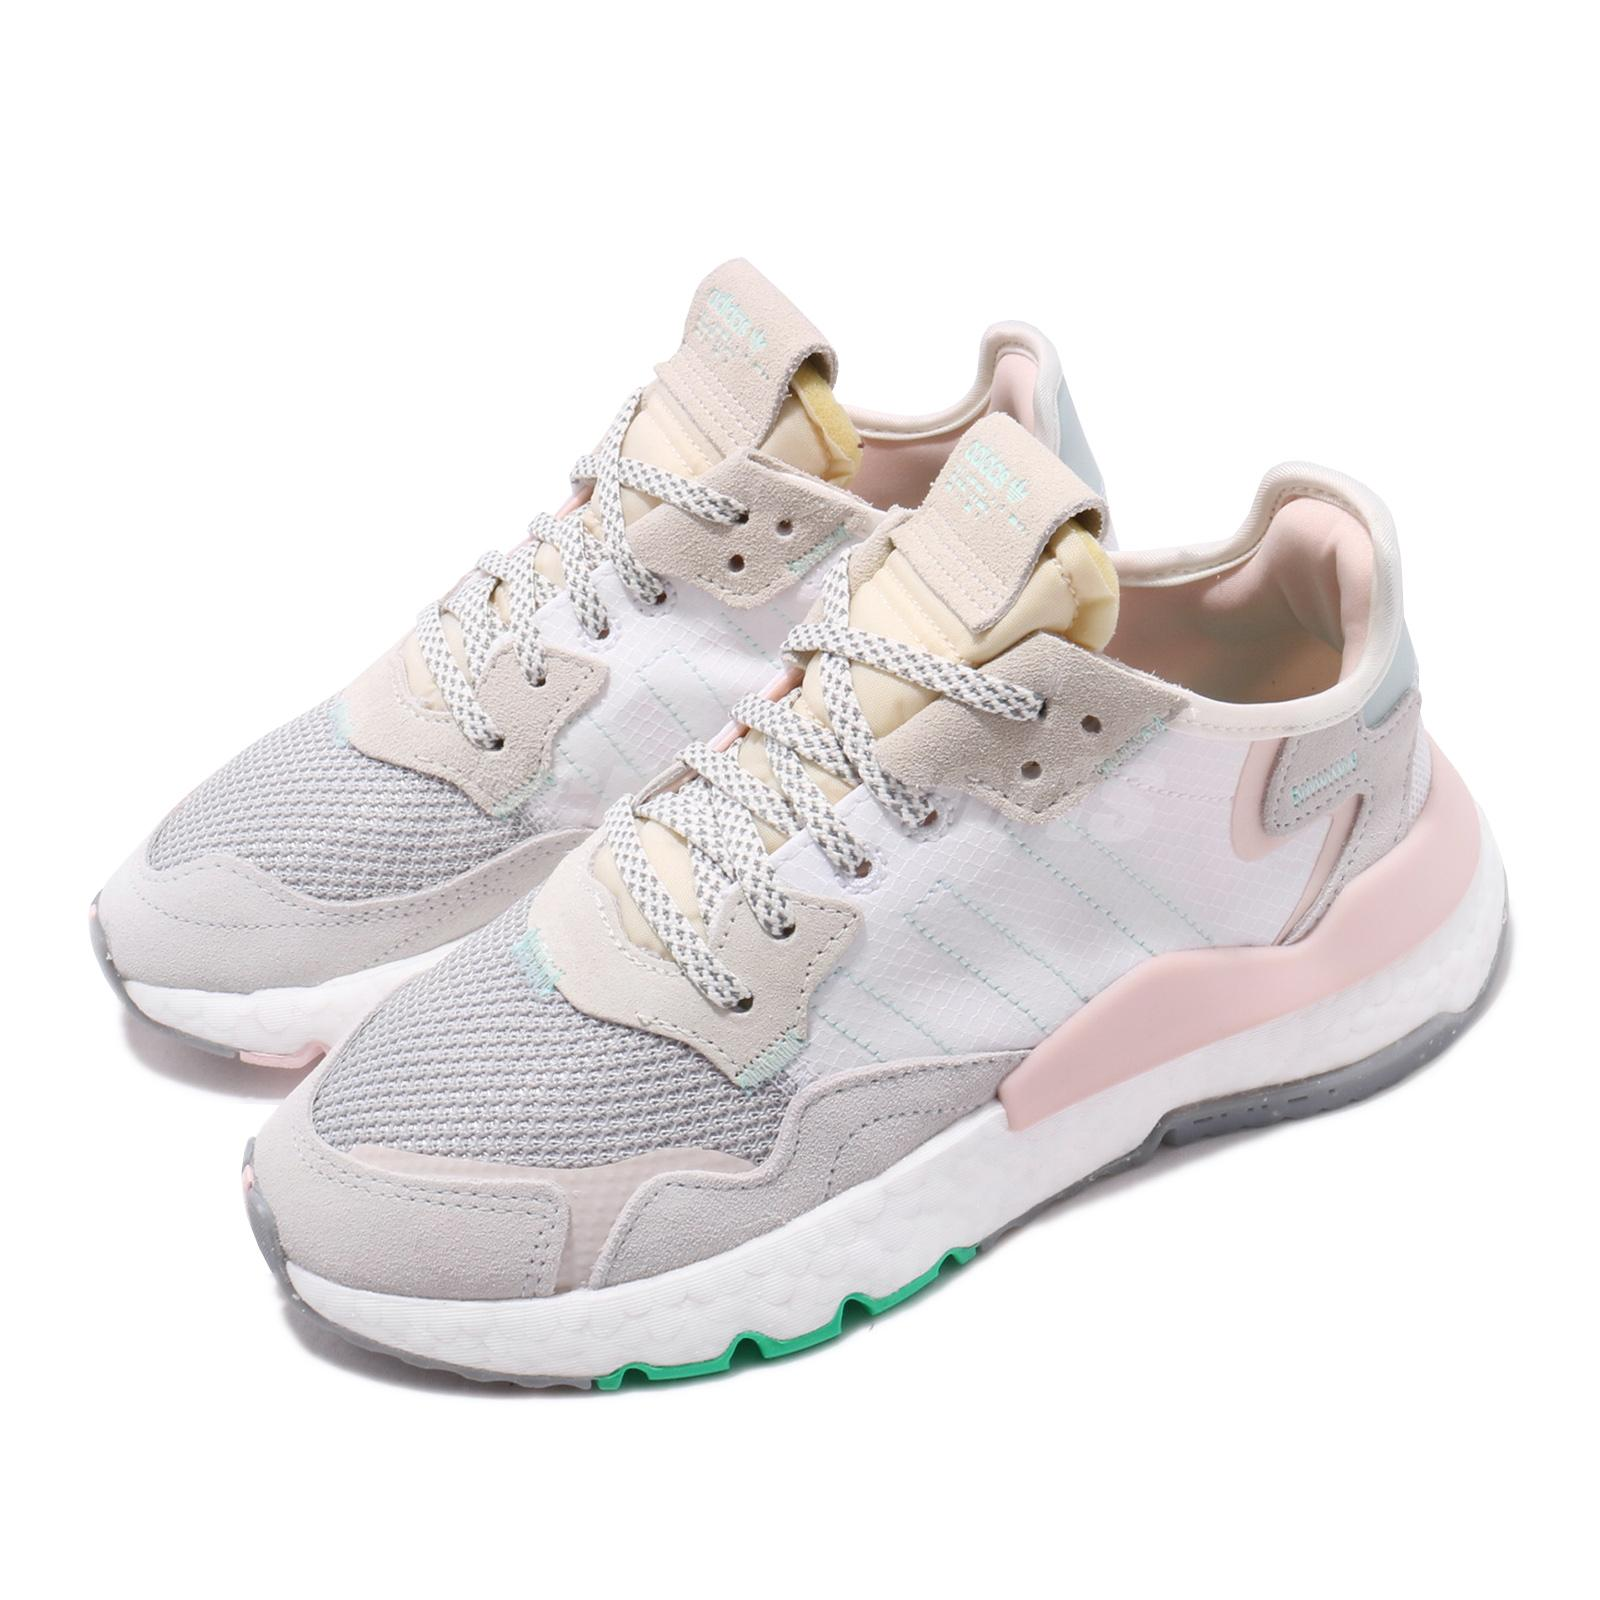 43aa43de8 Details about adidas Originals Nite Jogger W Boost White Grey Pink Women  Running Shoes EF8721